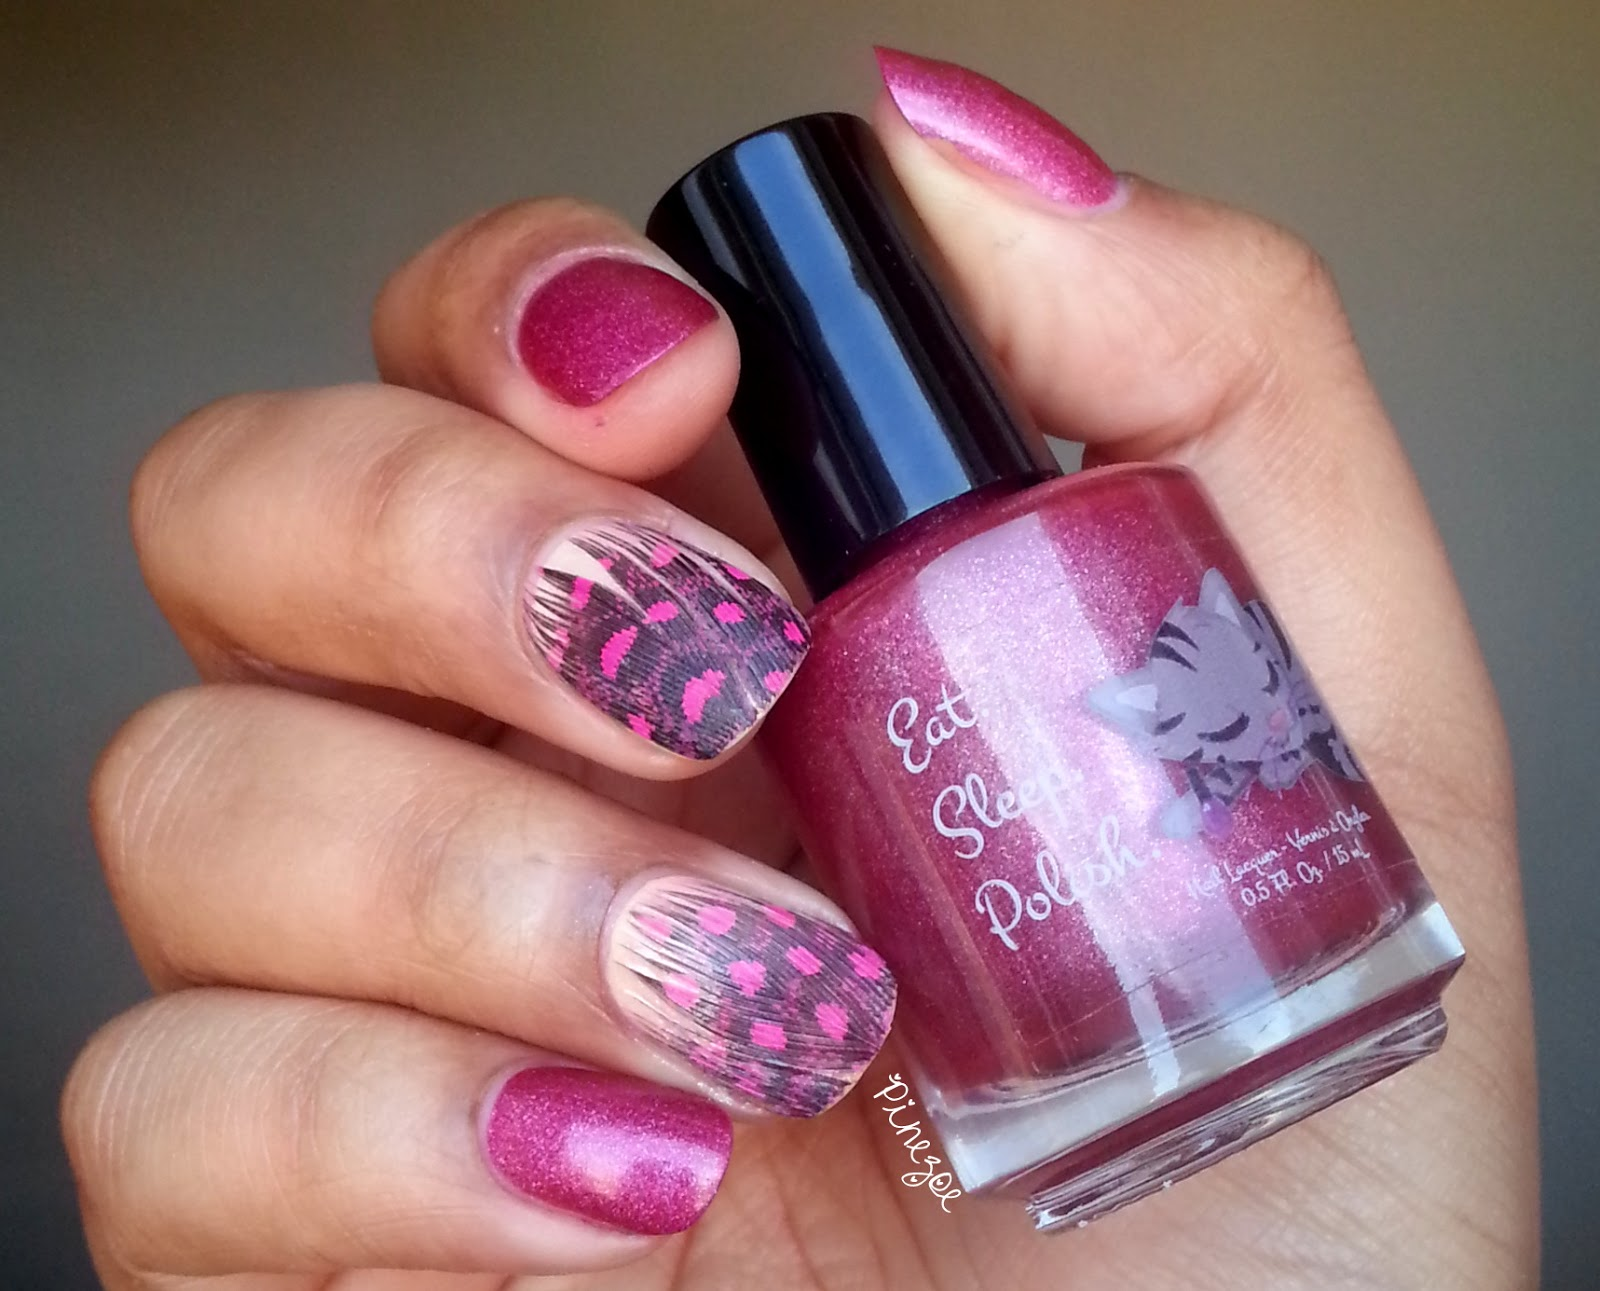 Eat Sleep Polish - Glitter berry & Ciaté Feather Manicure Kit